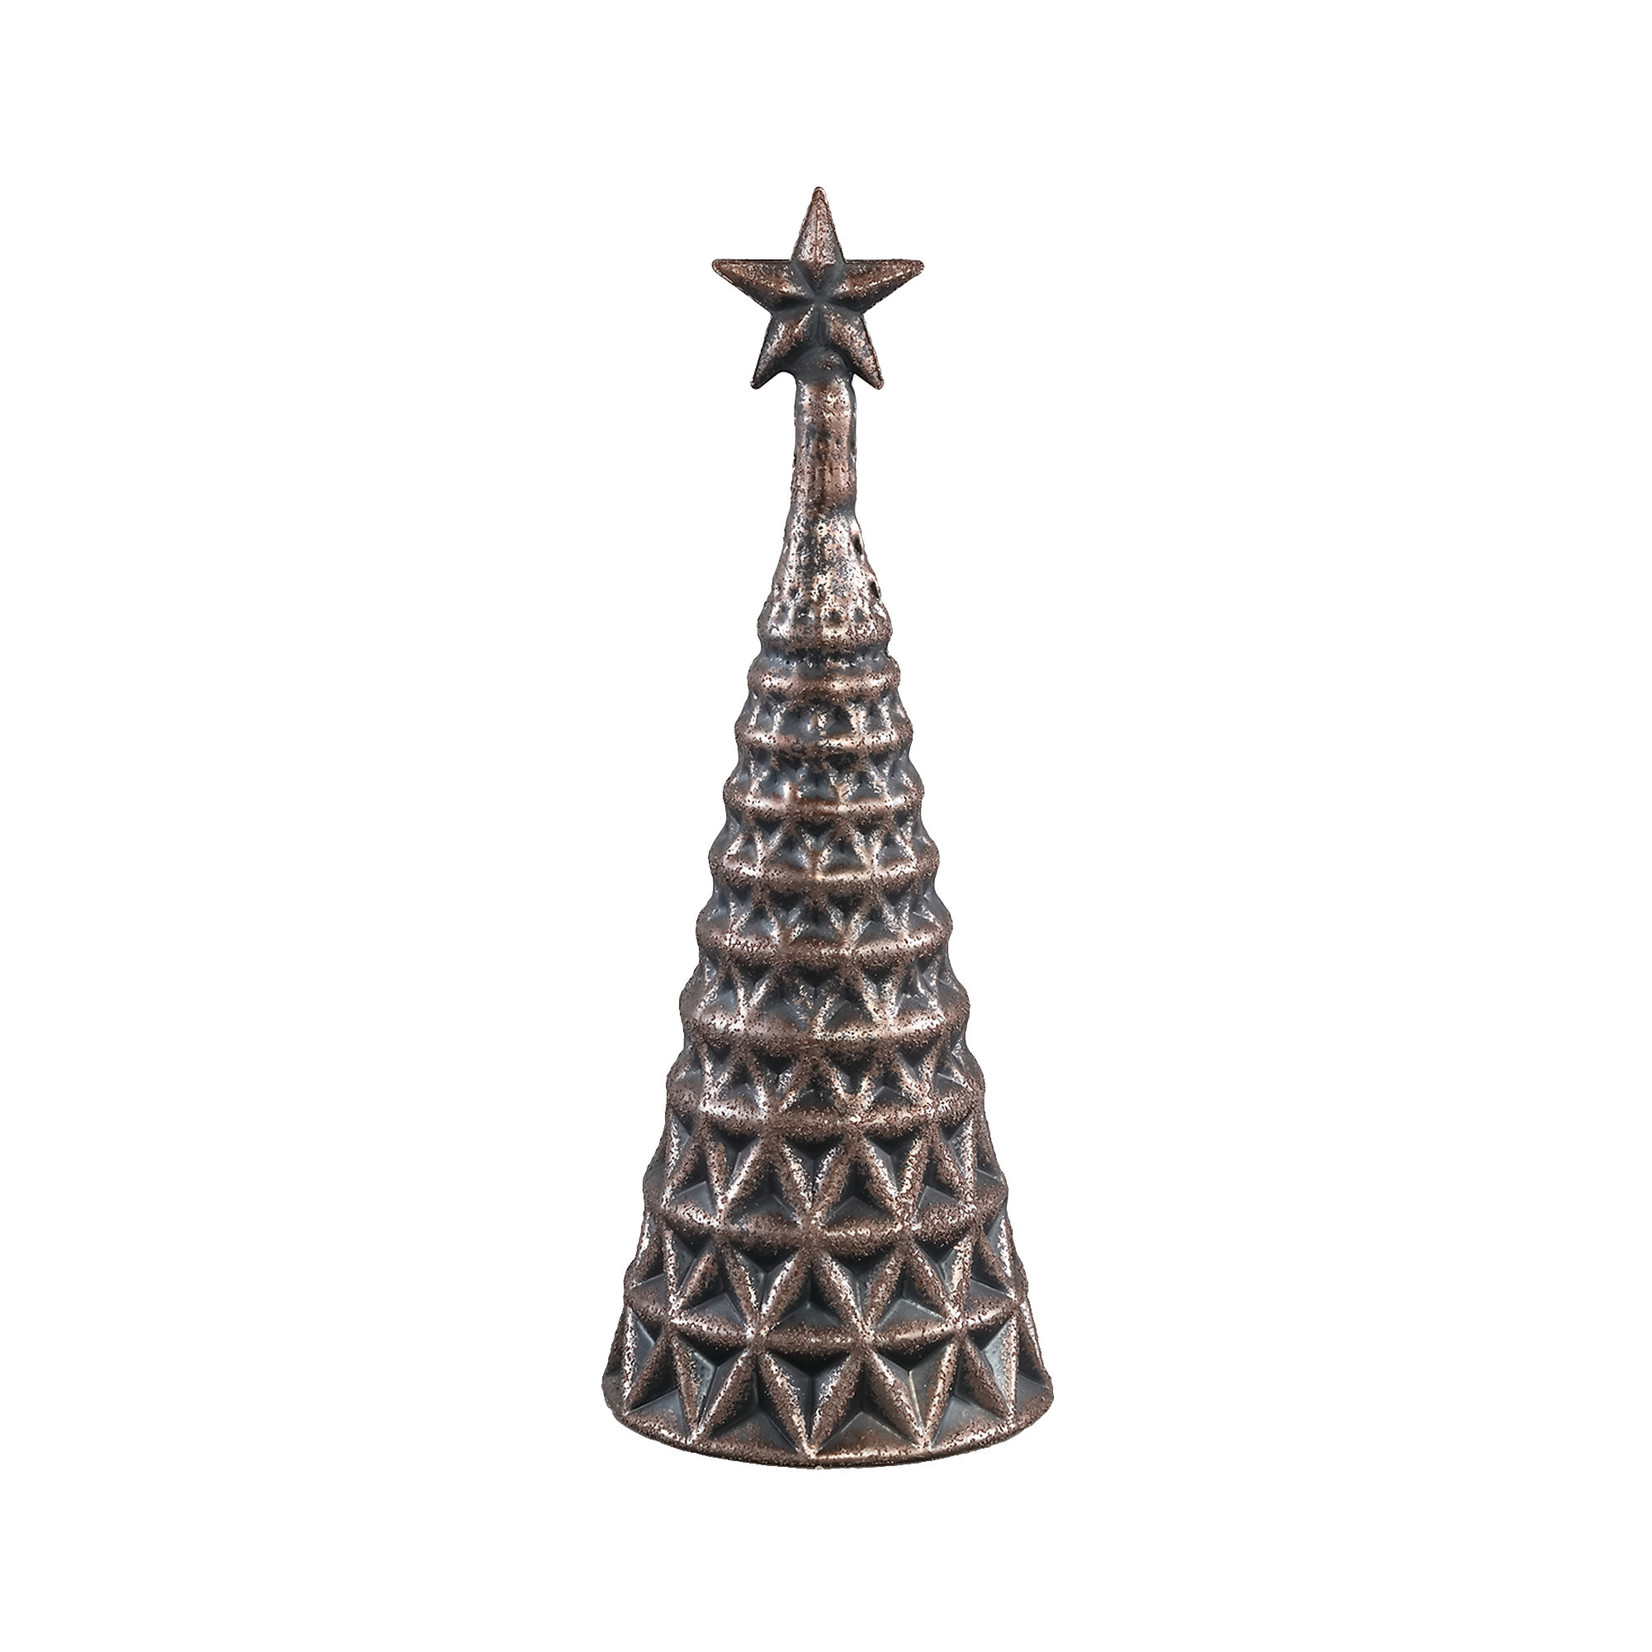 PTMD Christmas Aily brown glass tree star topper